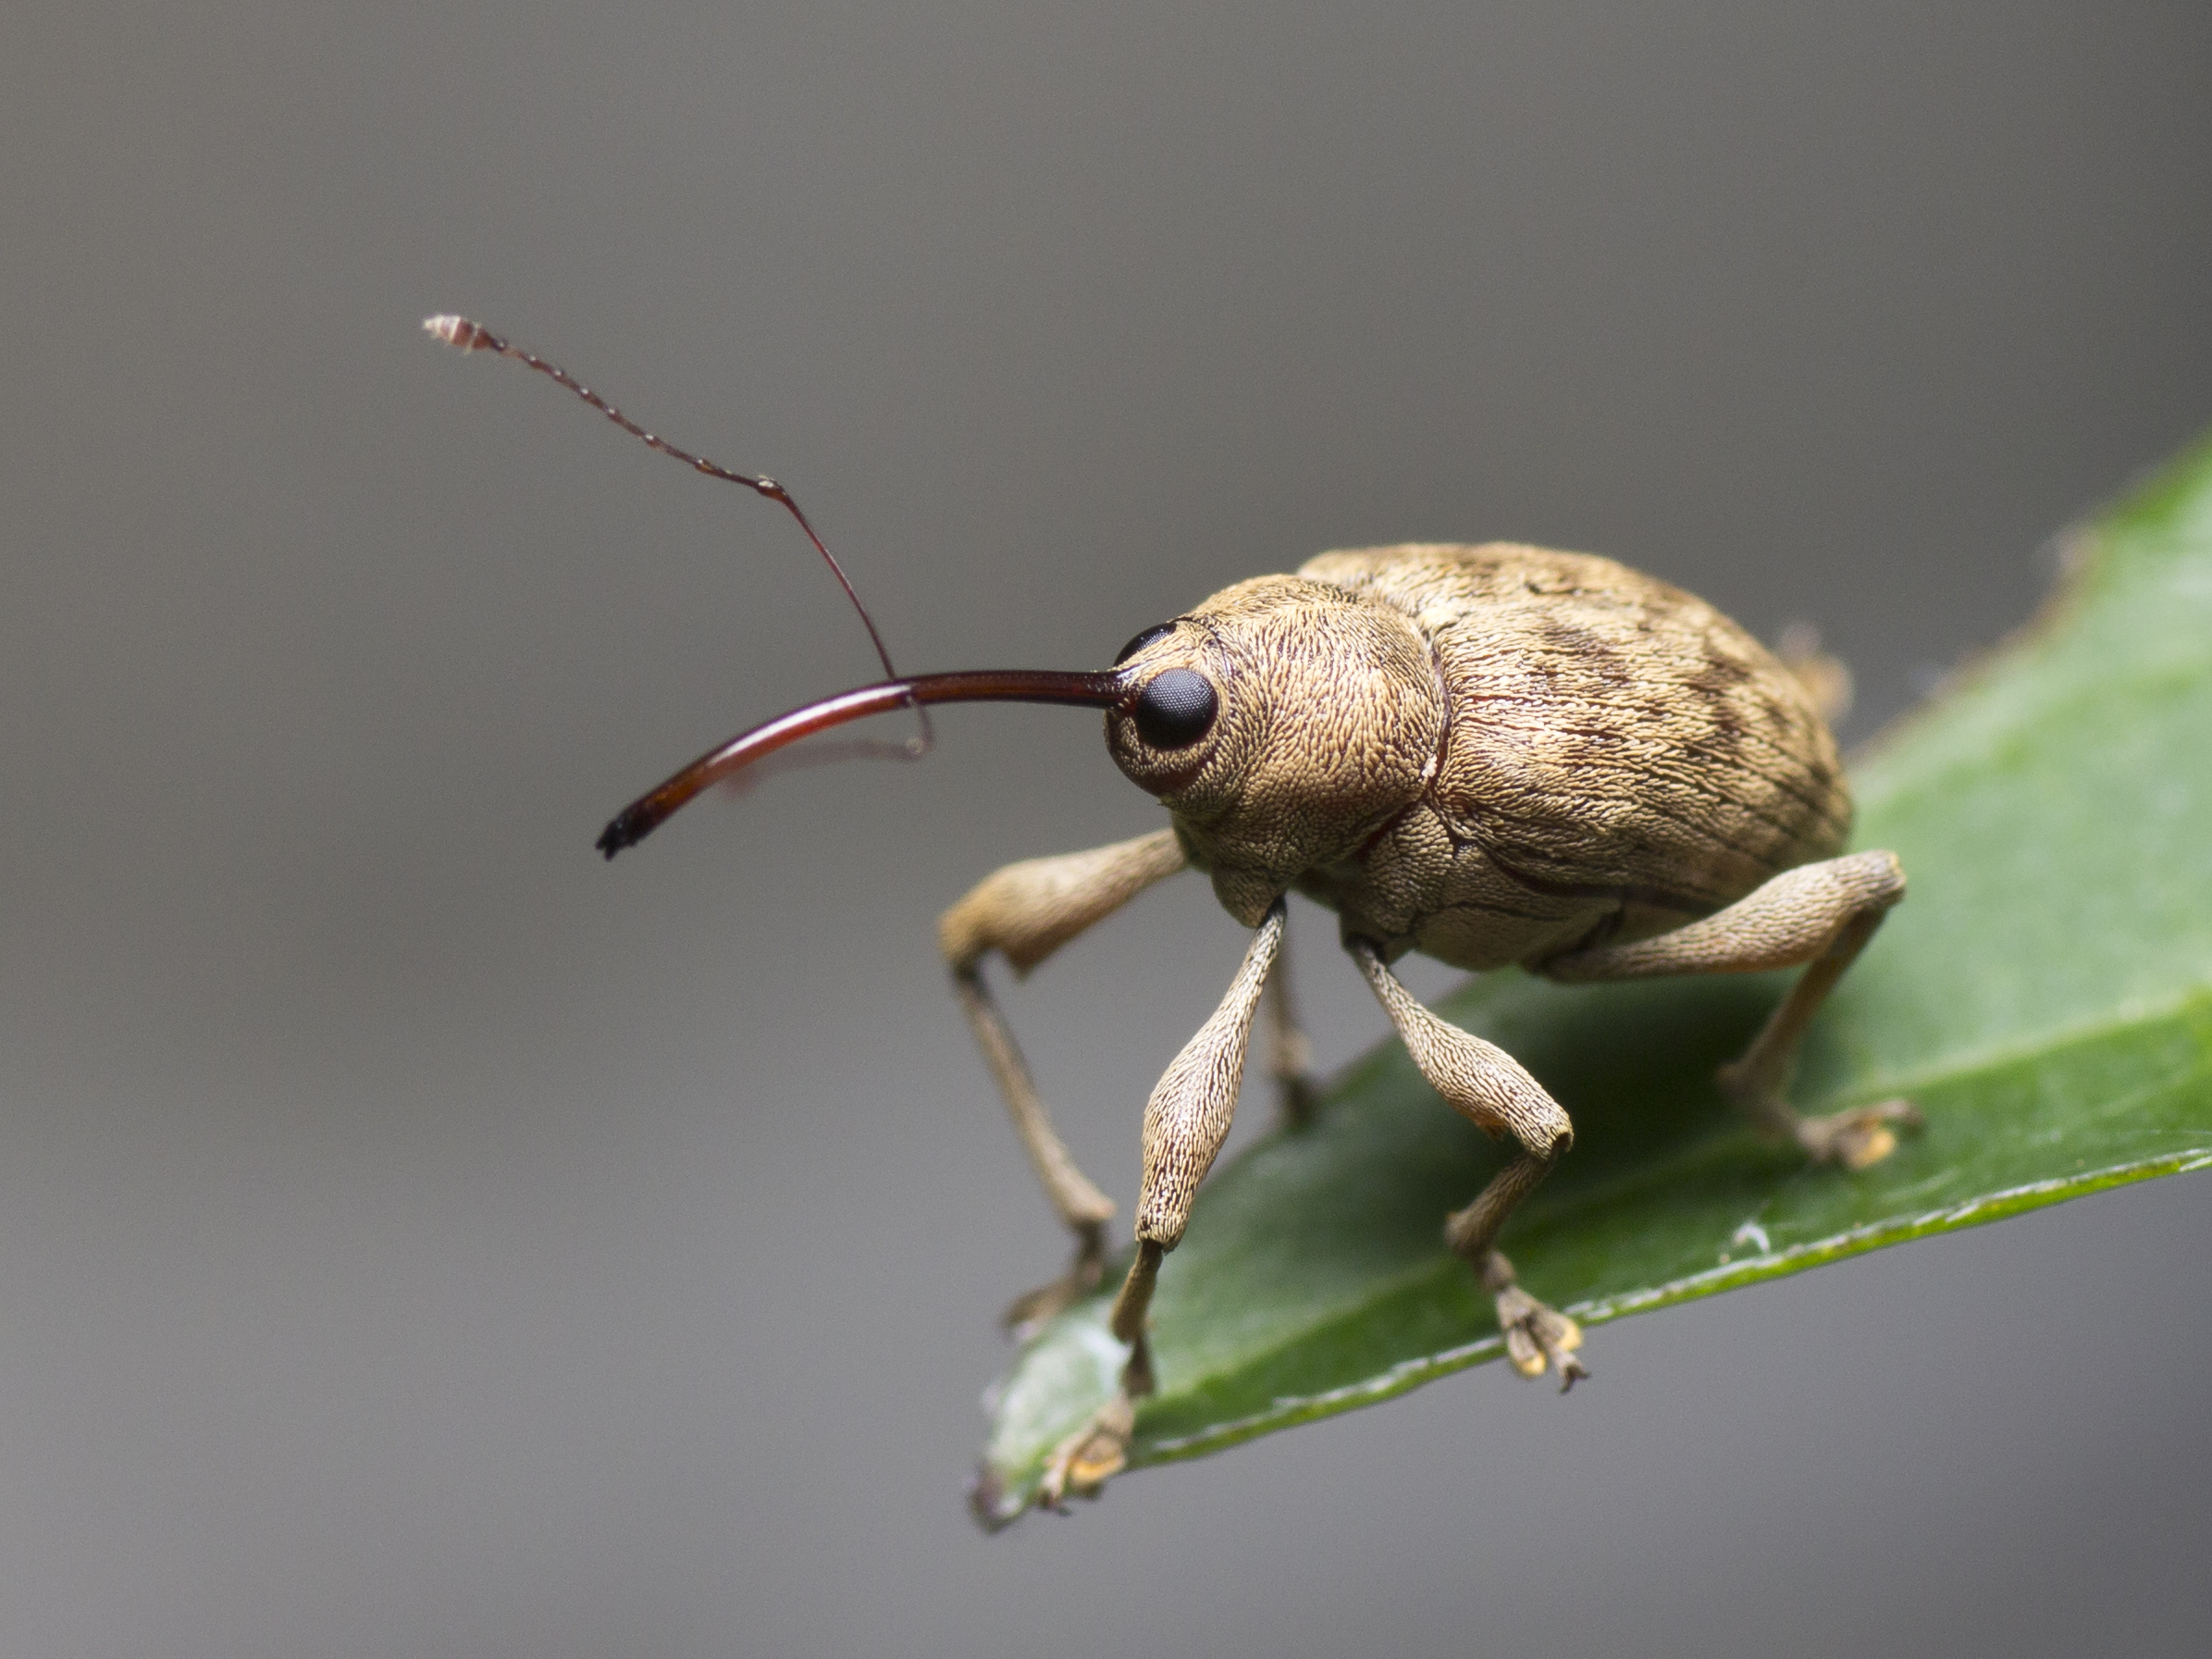 Insects and Other Invertebrates - Fun with macro